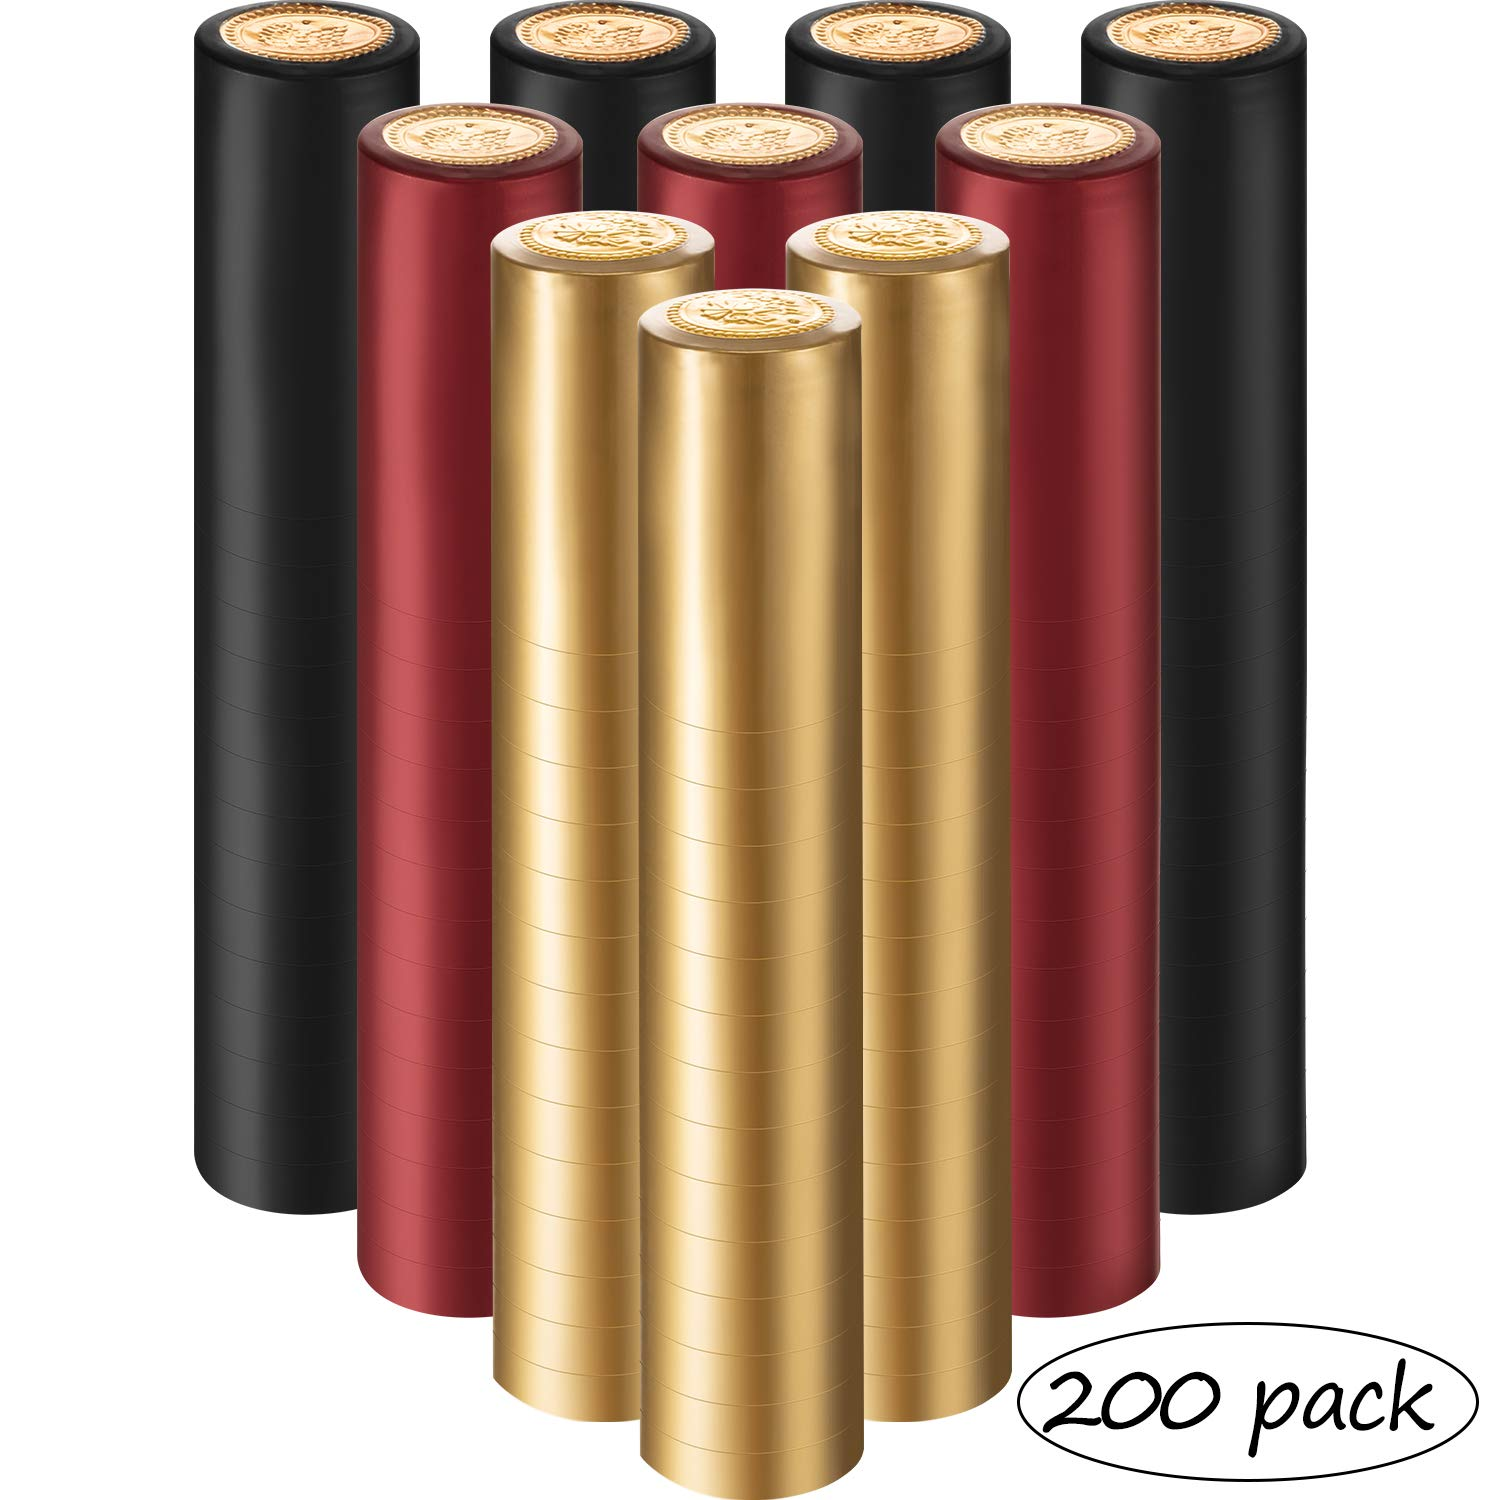 PVC Heat Shrink Capsules Wine Shrink Wrap Wine Bottle Capsules for Wine Cellars and Home Use, 3 Colors (200)